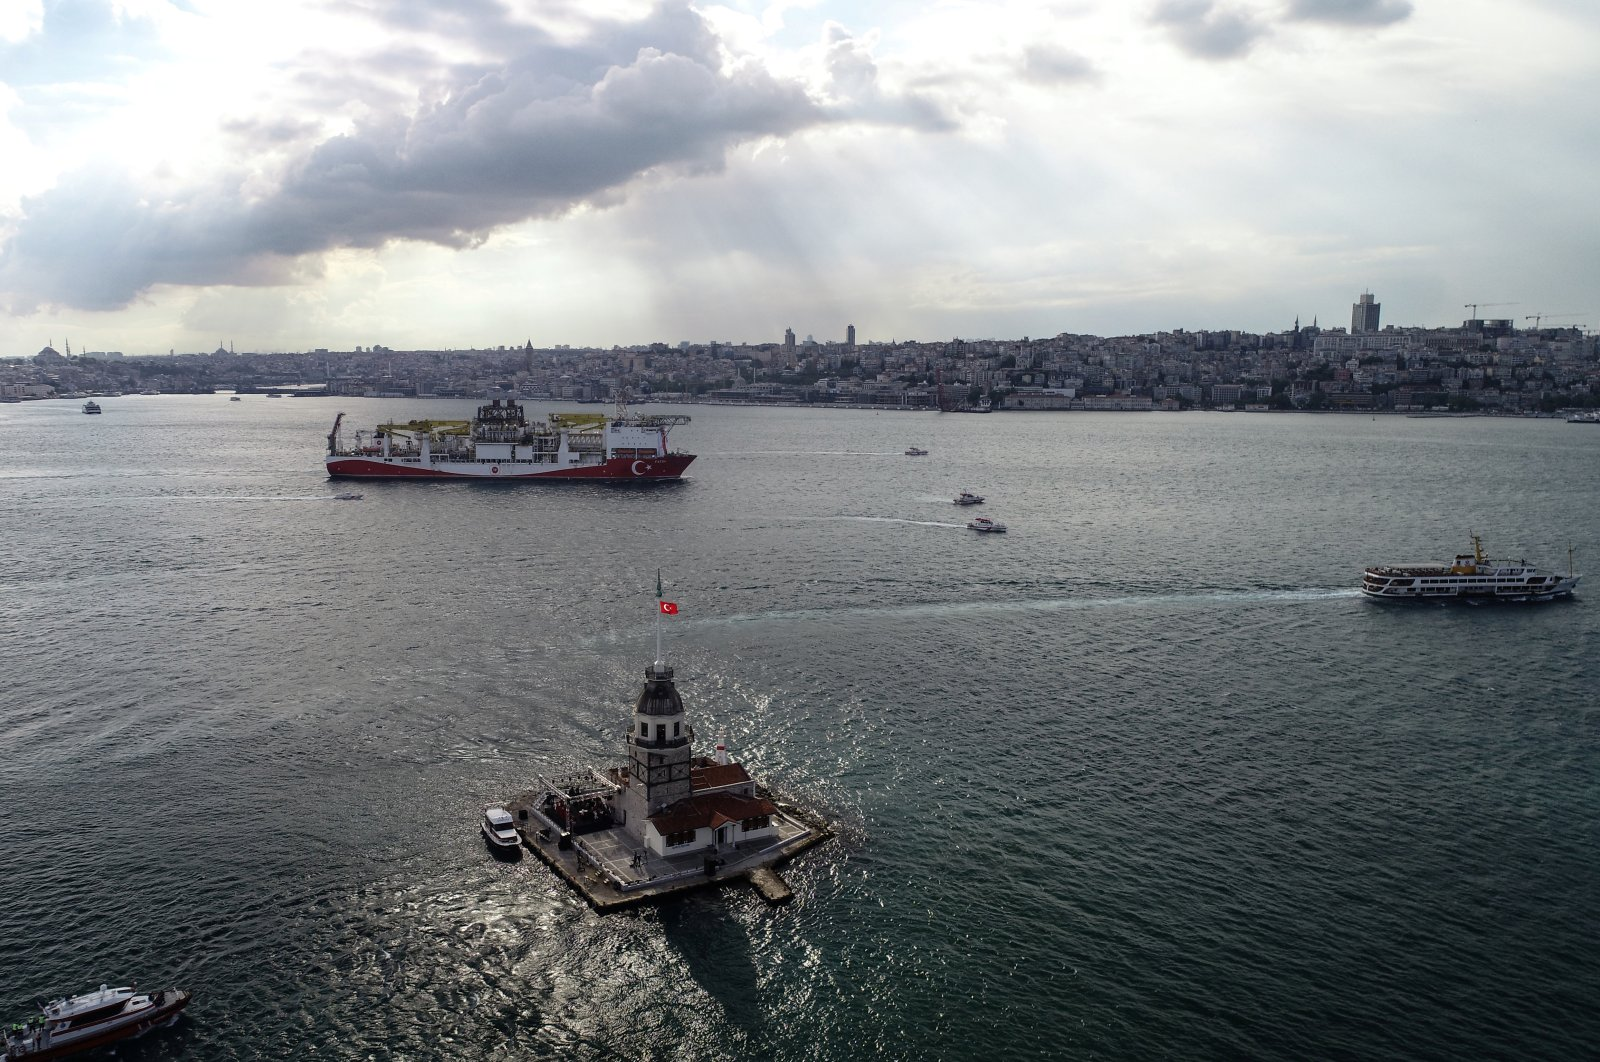 Turkey's drilling vessel, Fatih, sails through the Bosporus as it leaves for the Black Sea, Istanbul, Turkey, May 29, 2020. (Reuters Photo)